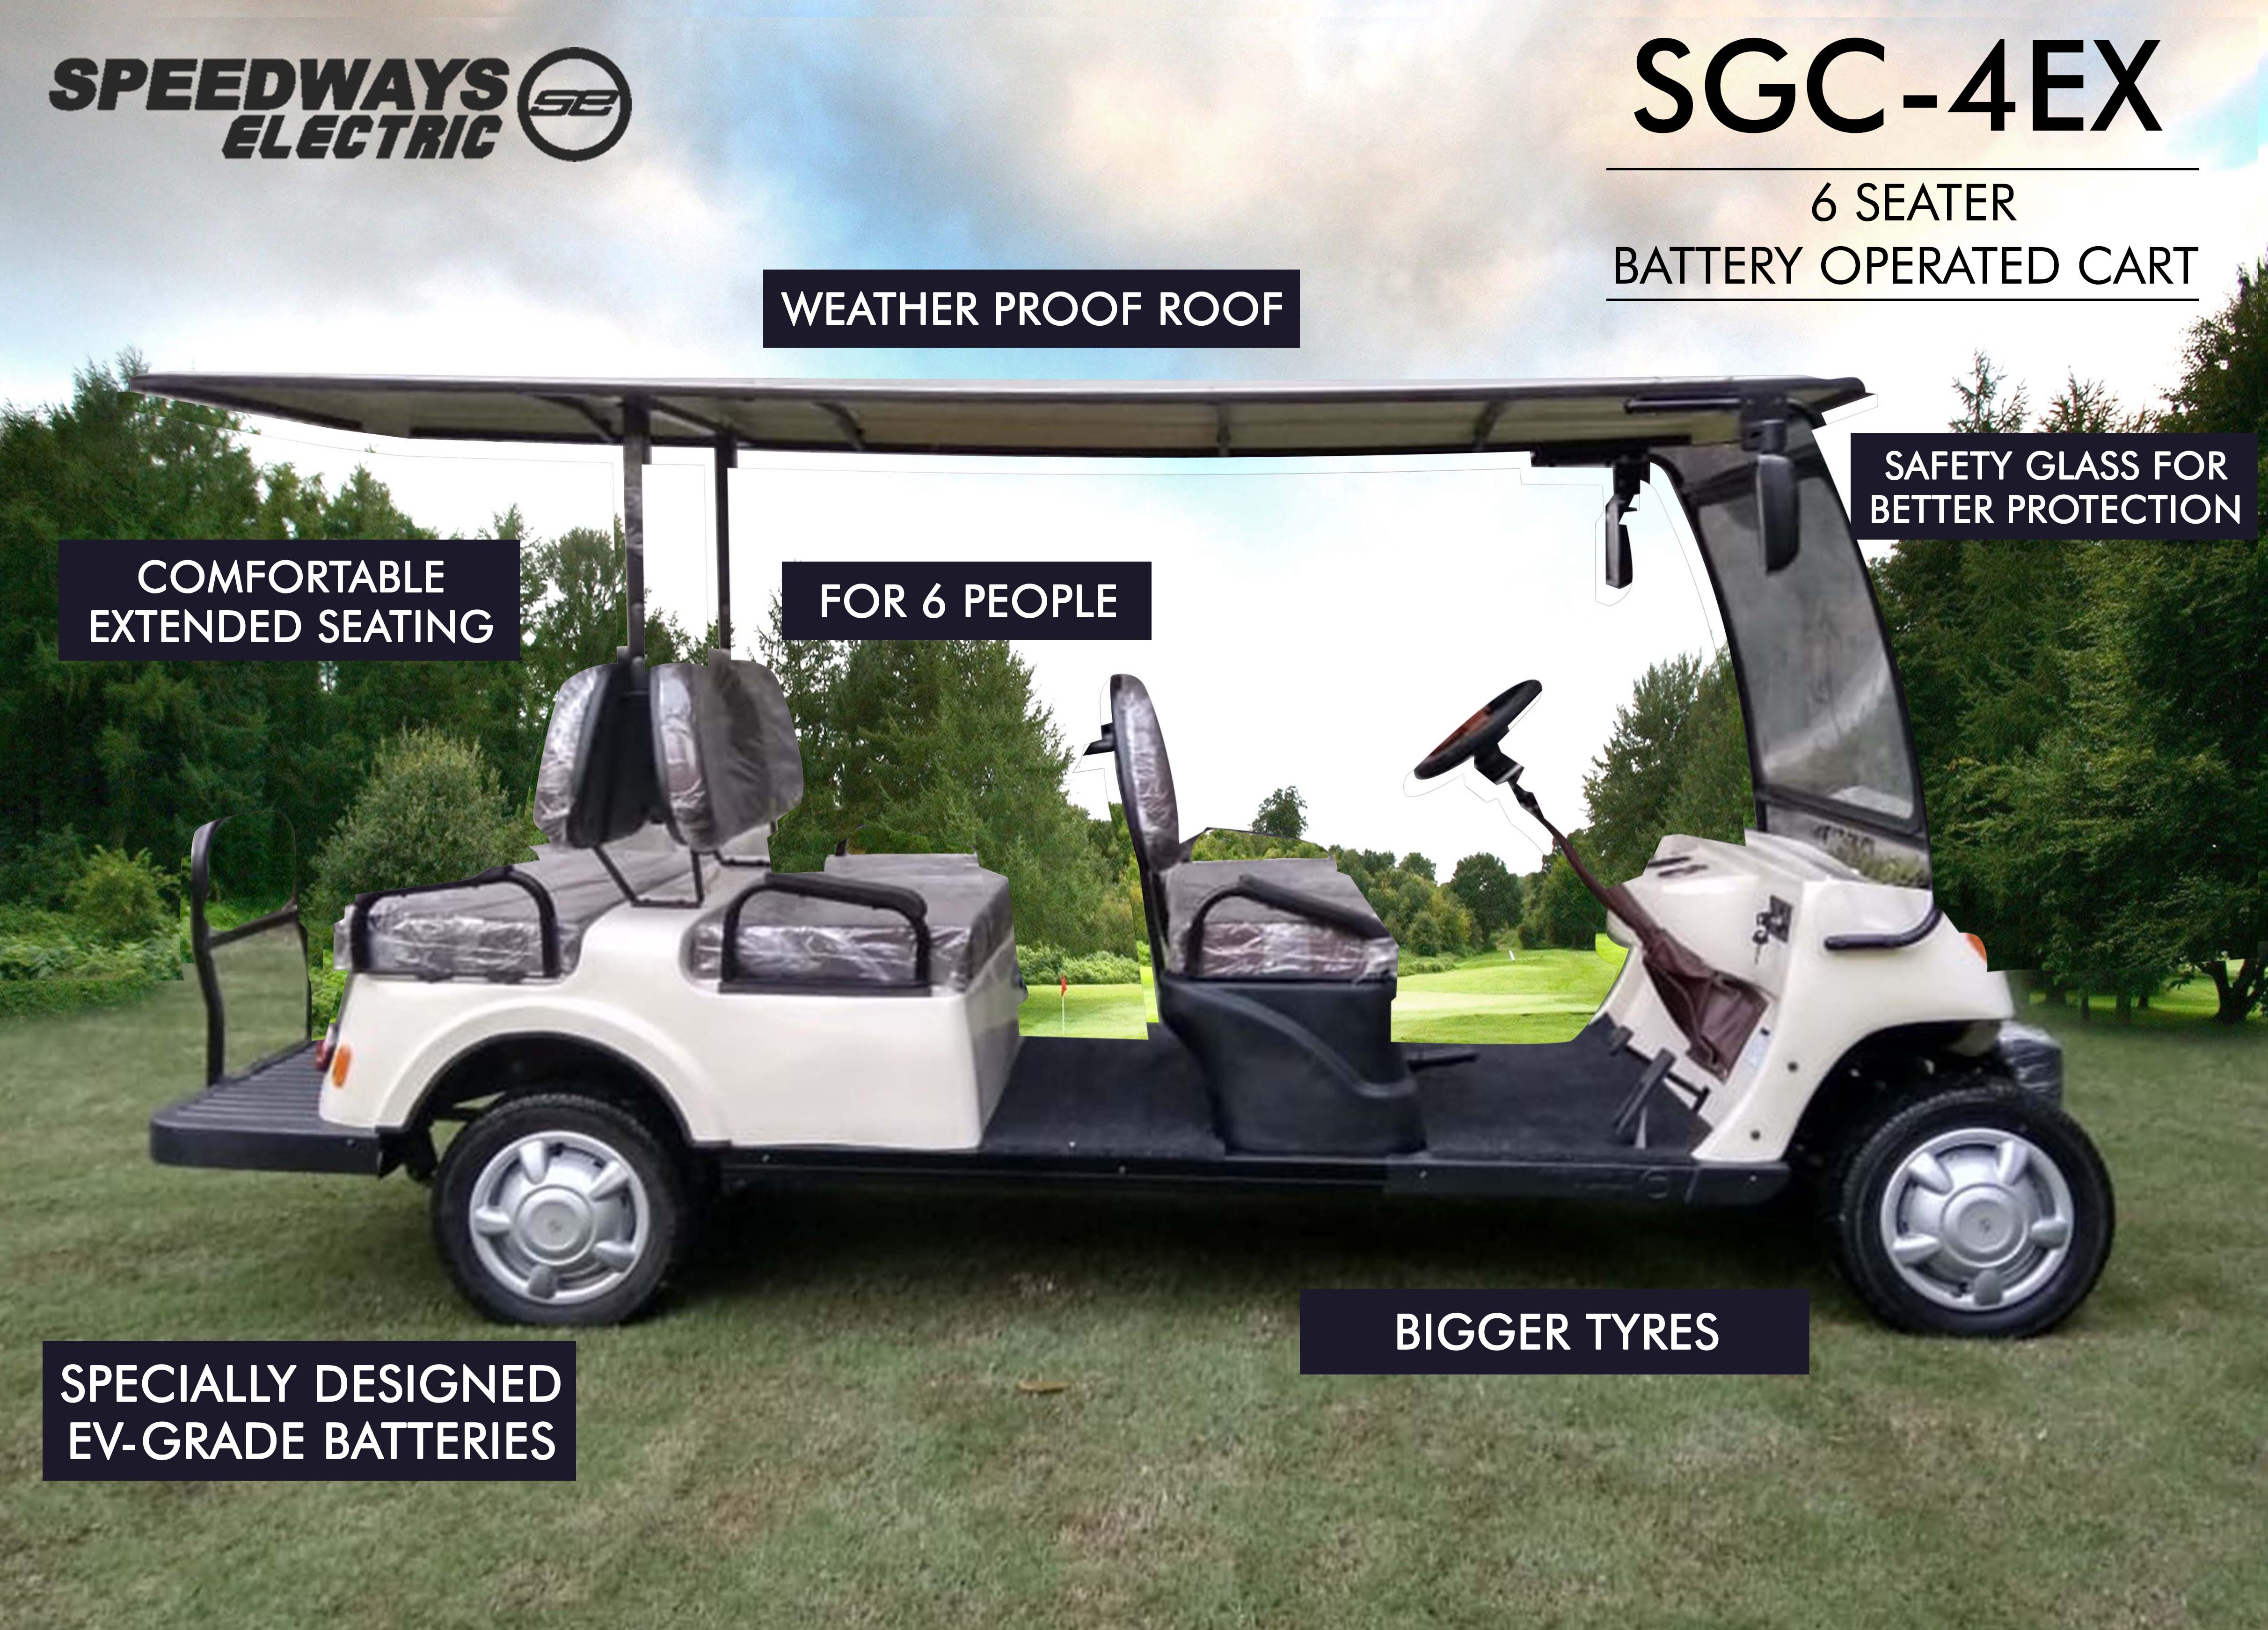 SGC4ex - Six Seater Electric Golf Cart